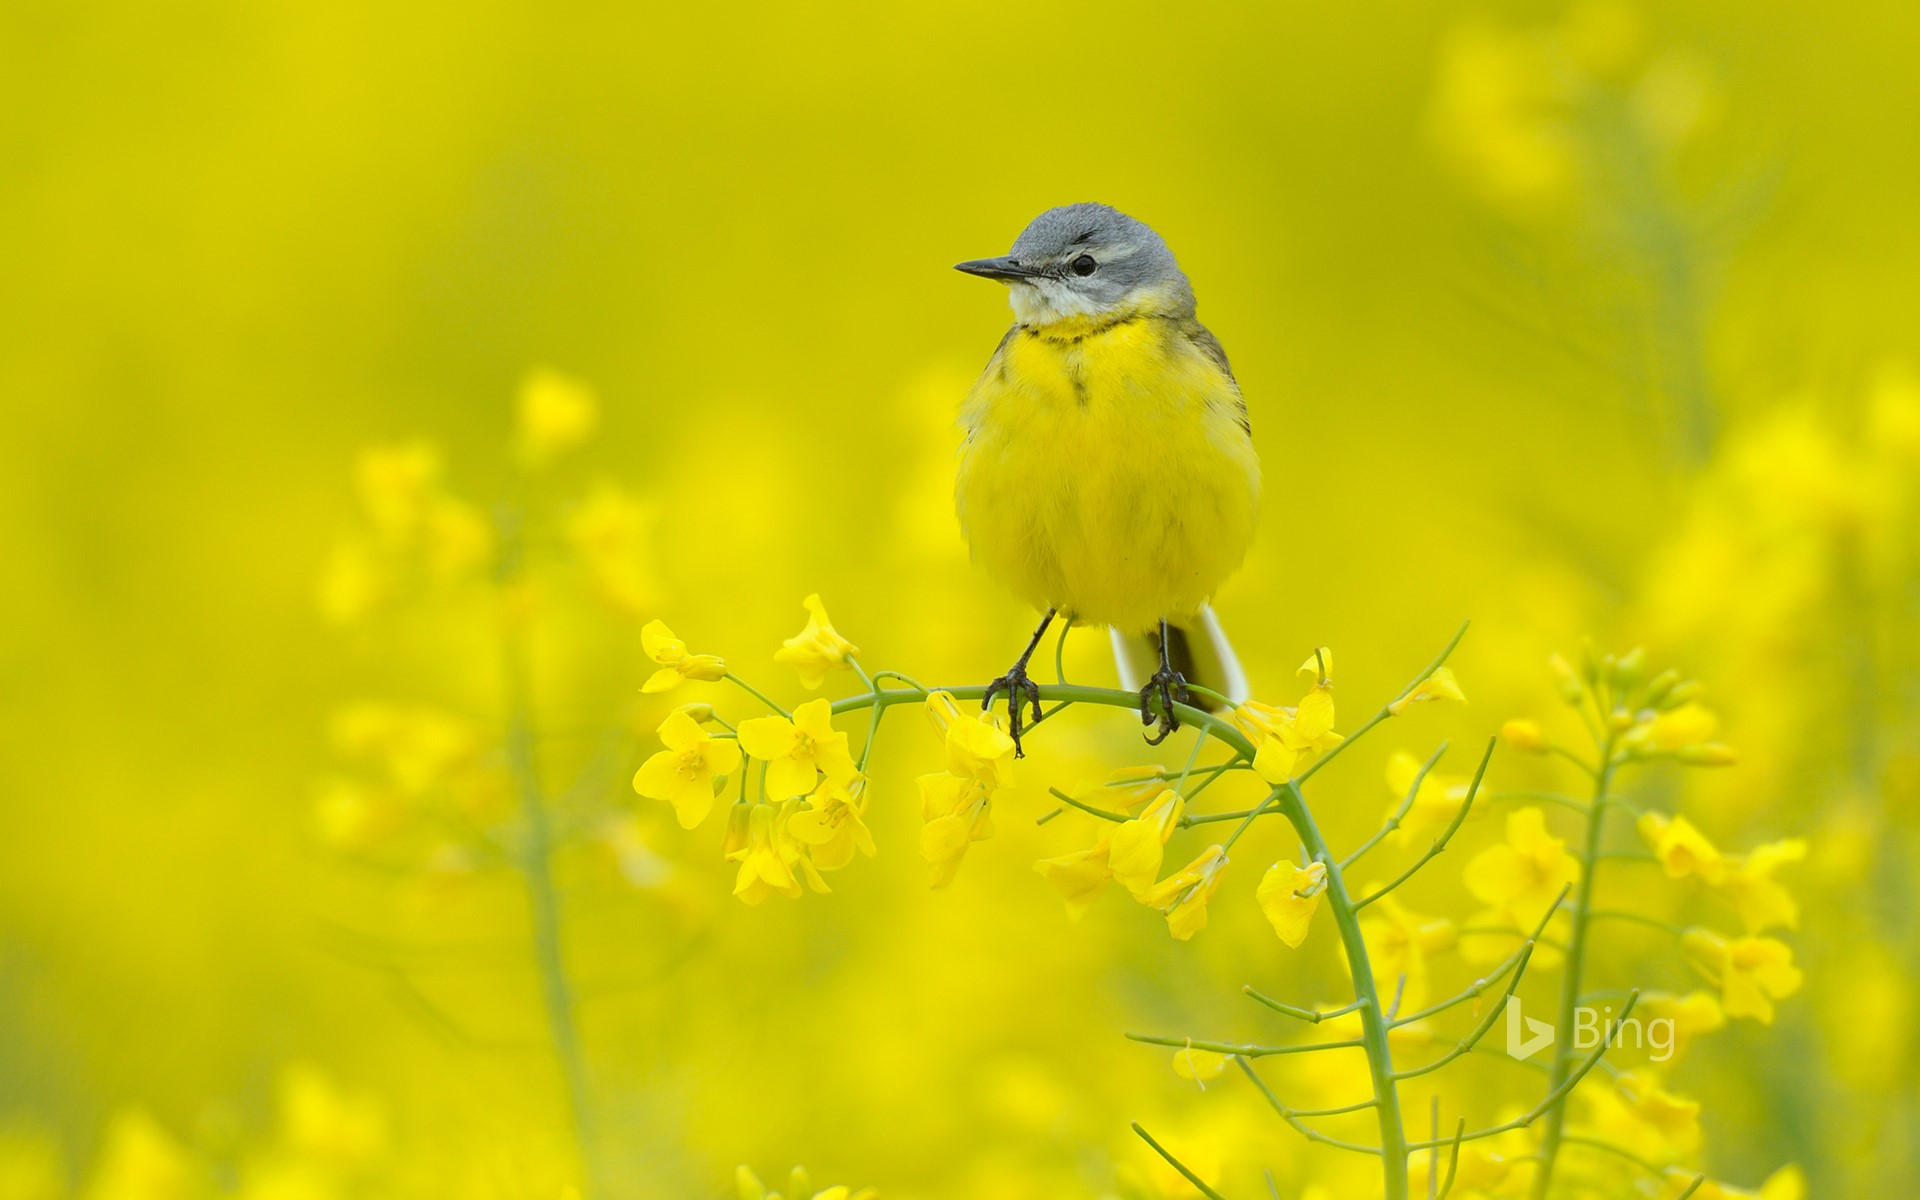 Blue-headed wagtail amid yellow flowers, Hesse, Germany